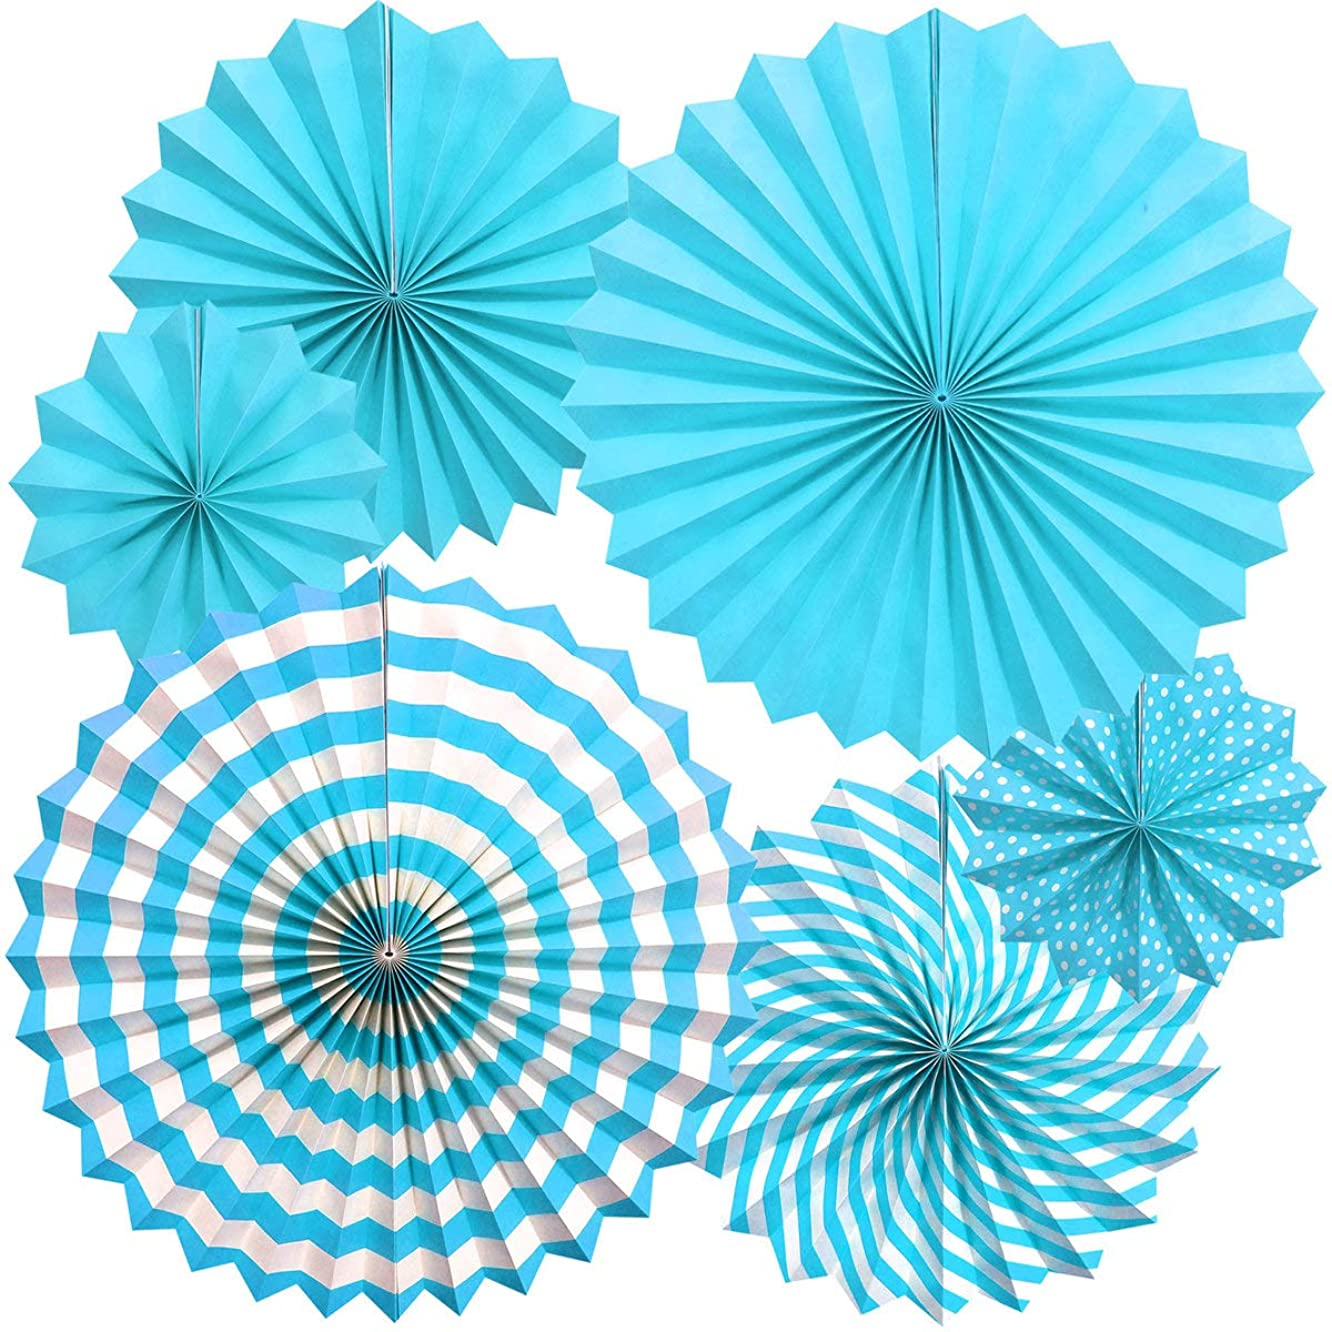 Zolee Hanging Paper Fans Decorations Kit for Wall - Set of 6 Circle Rosettes Tissue Paper Fans Bulk for Party Favors, Wedding, Birthday, Festival, Christmas, Events, Home Decor (Blue)